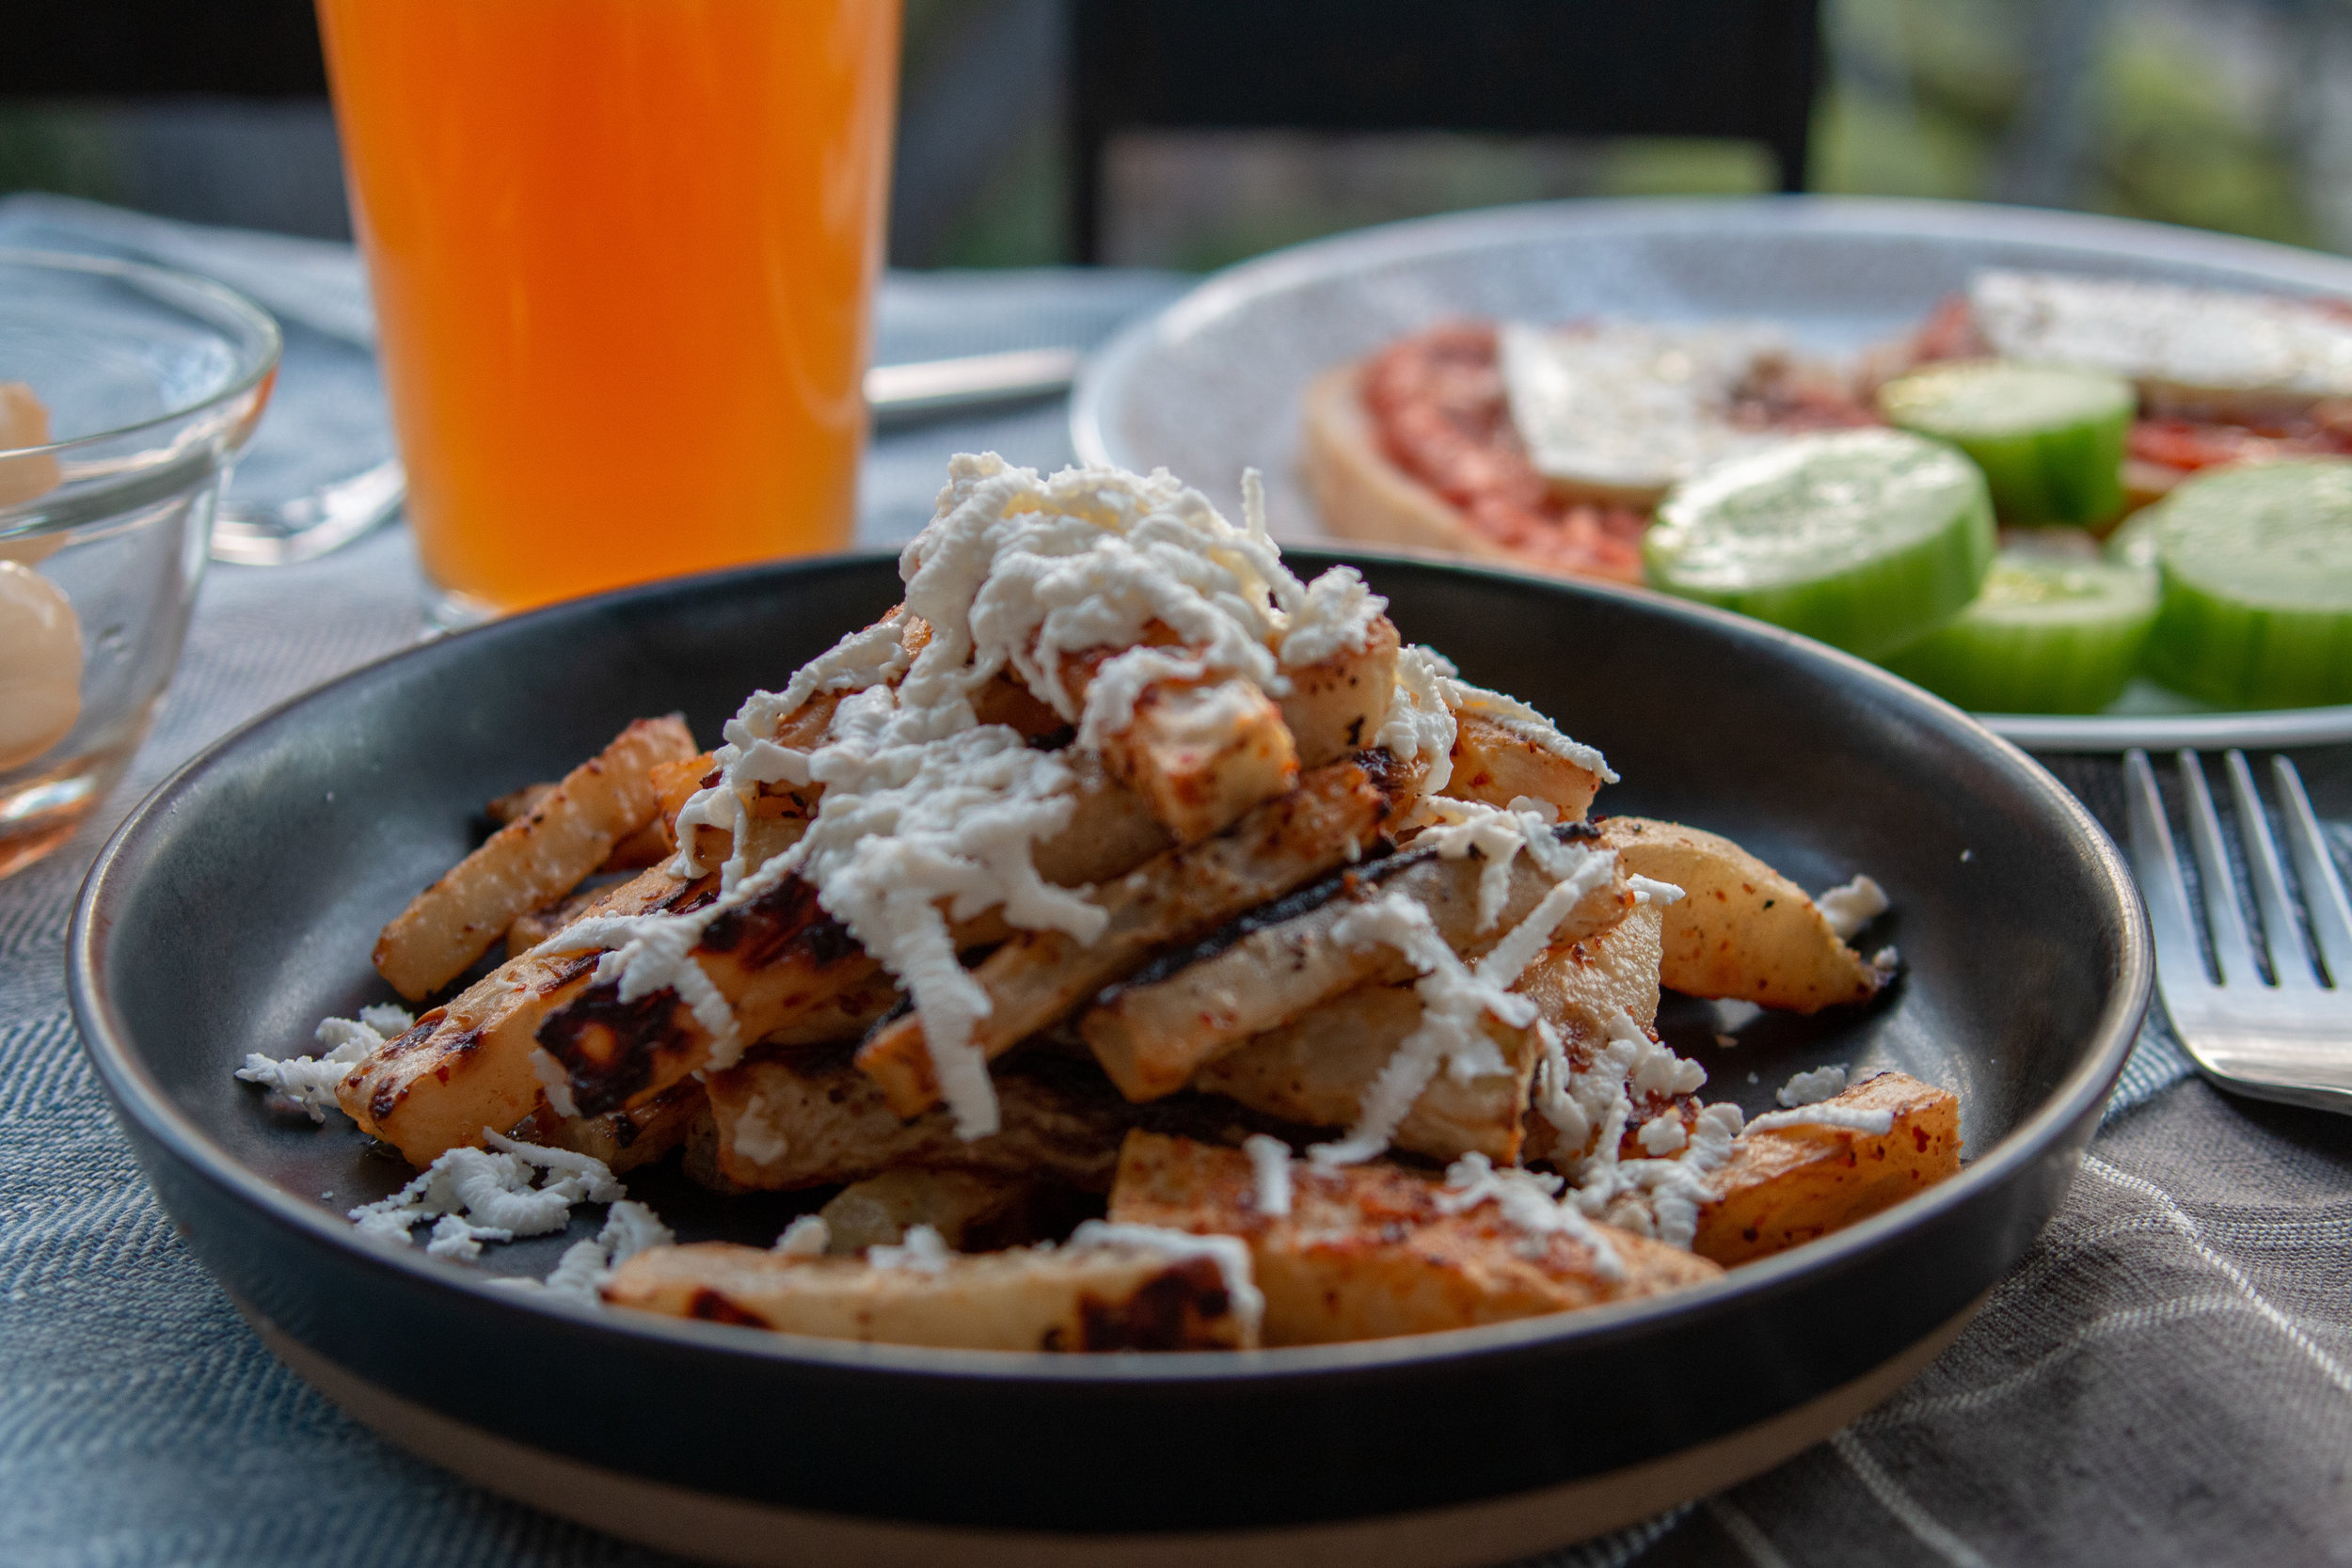 A big plate of kohlrabi fries with grated feta cheese